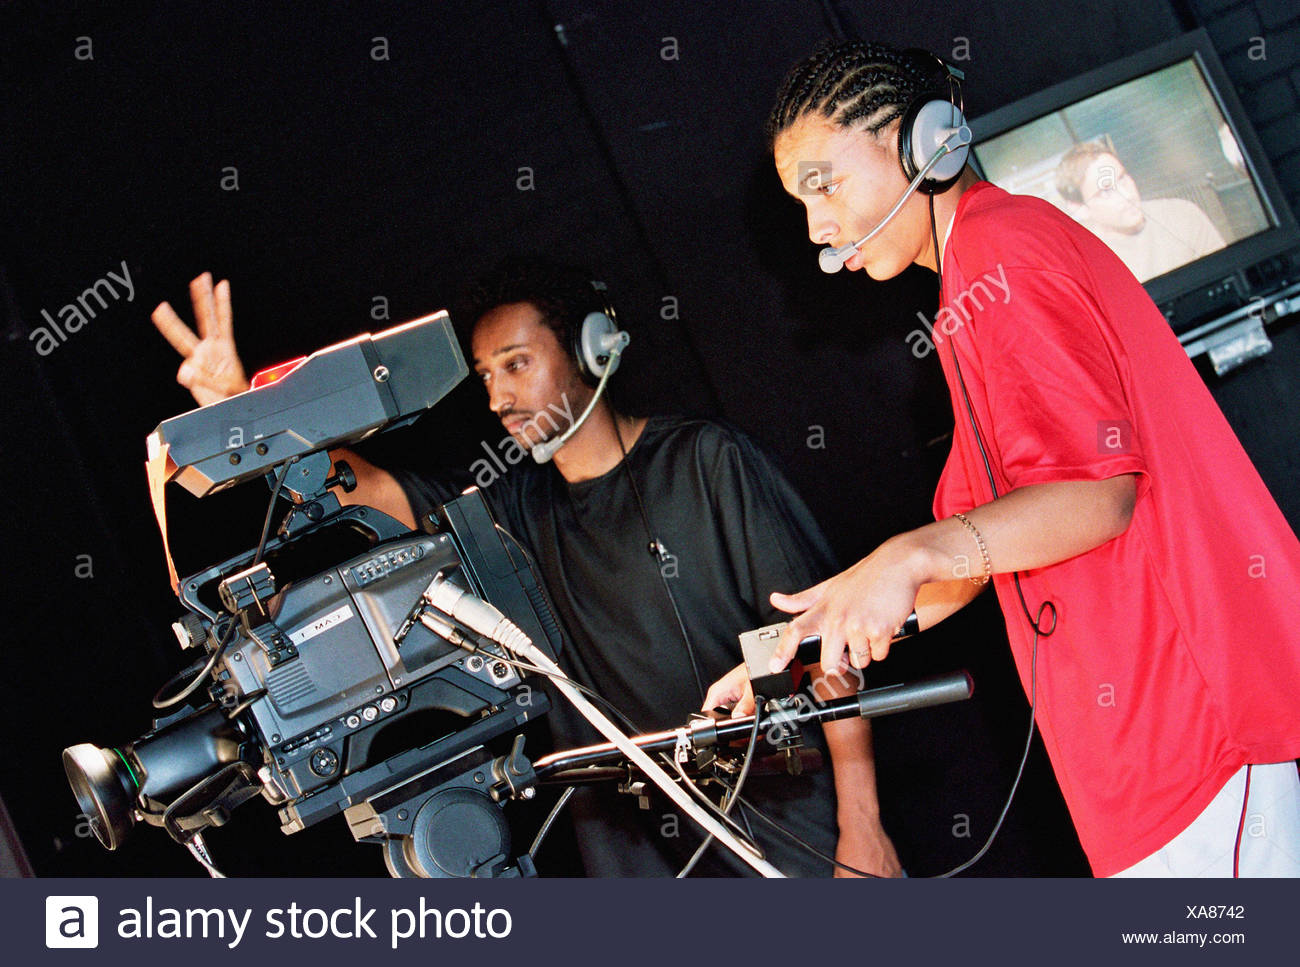 Two cameramen - Stock Image